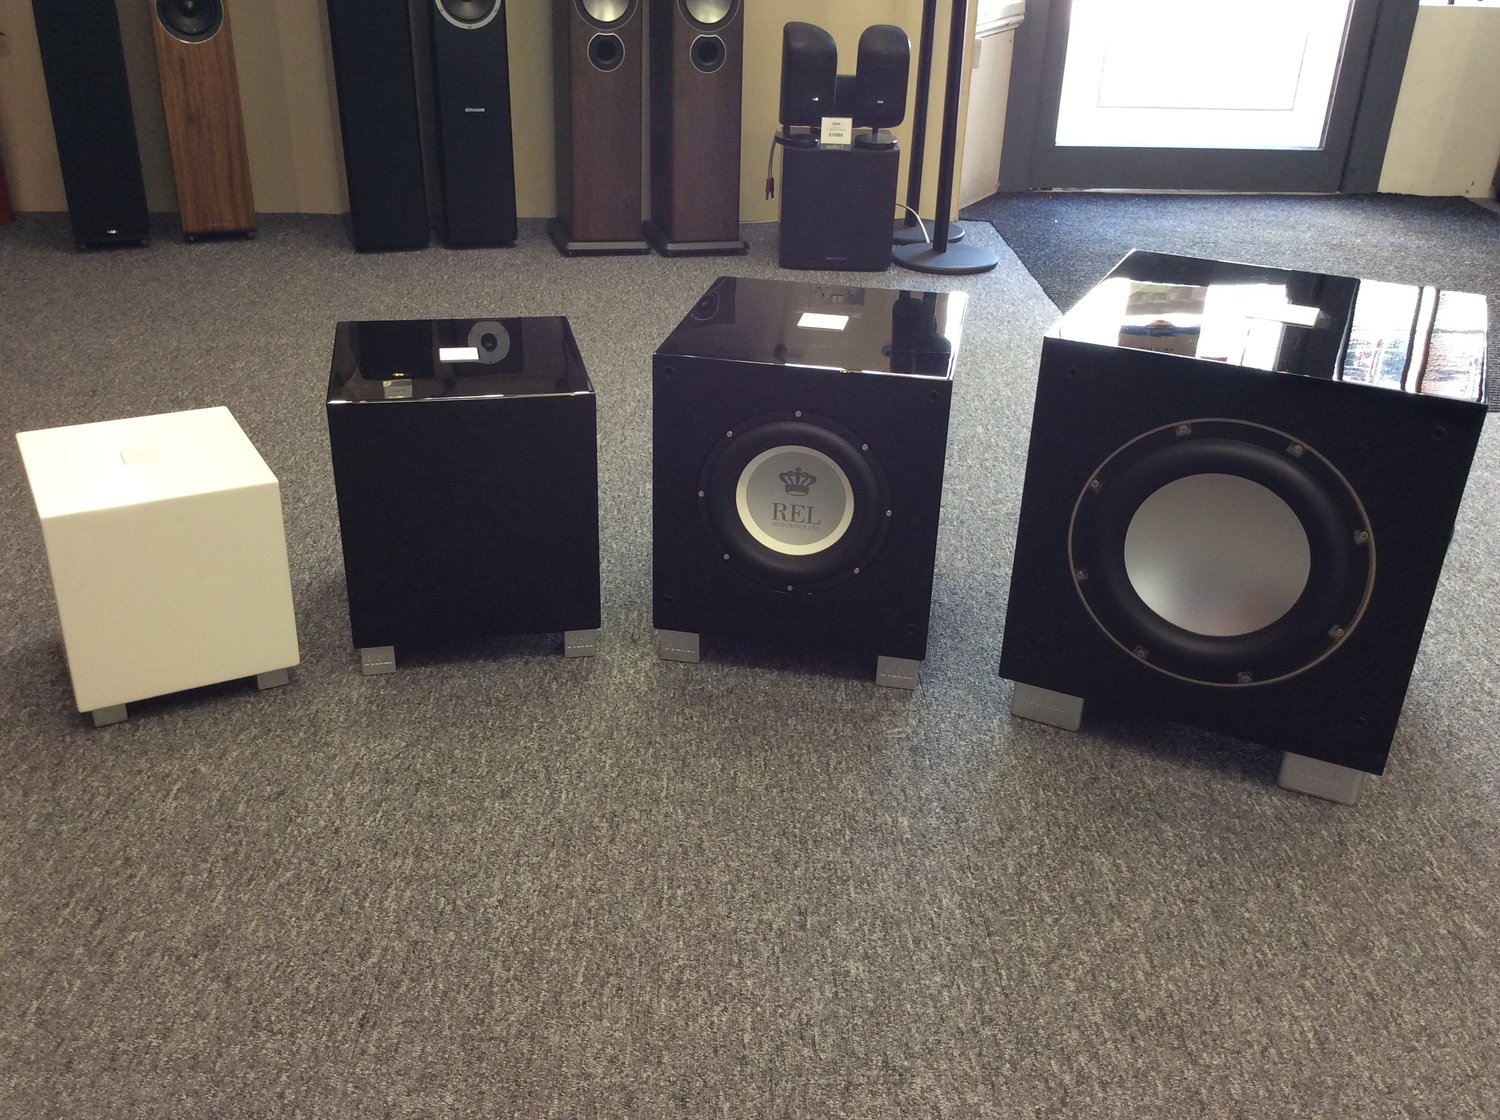 Huge Sonic Rewards Await With REL Acoustics Sub-bass Systems In